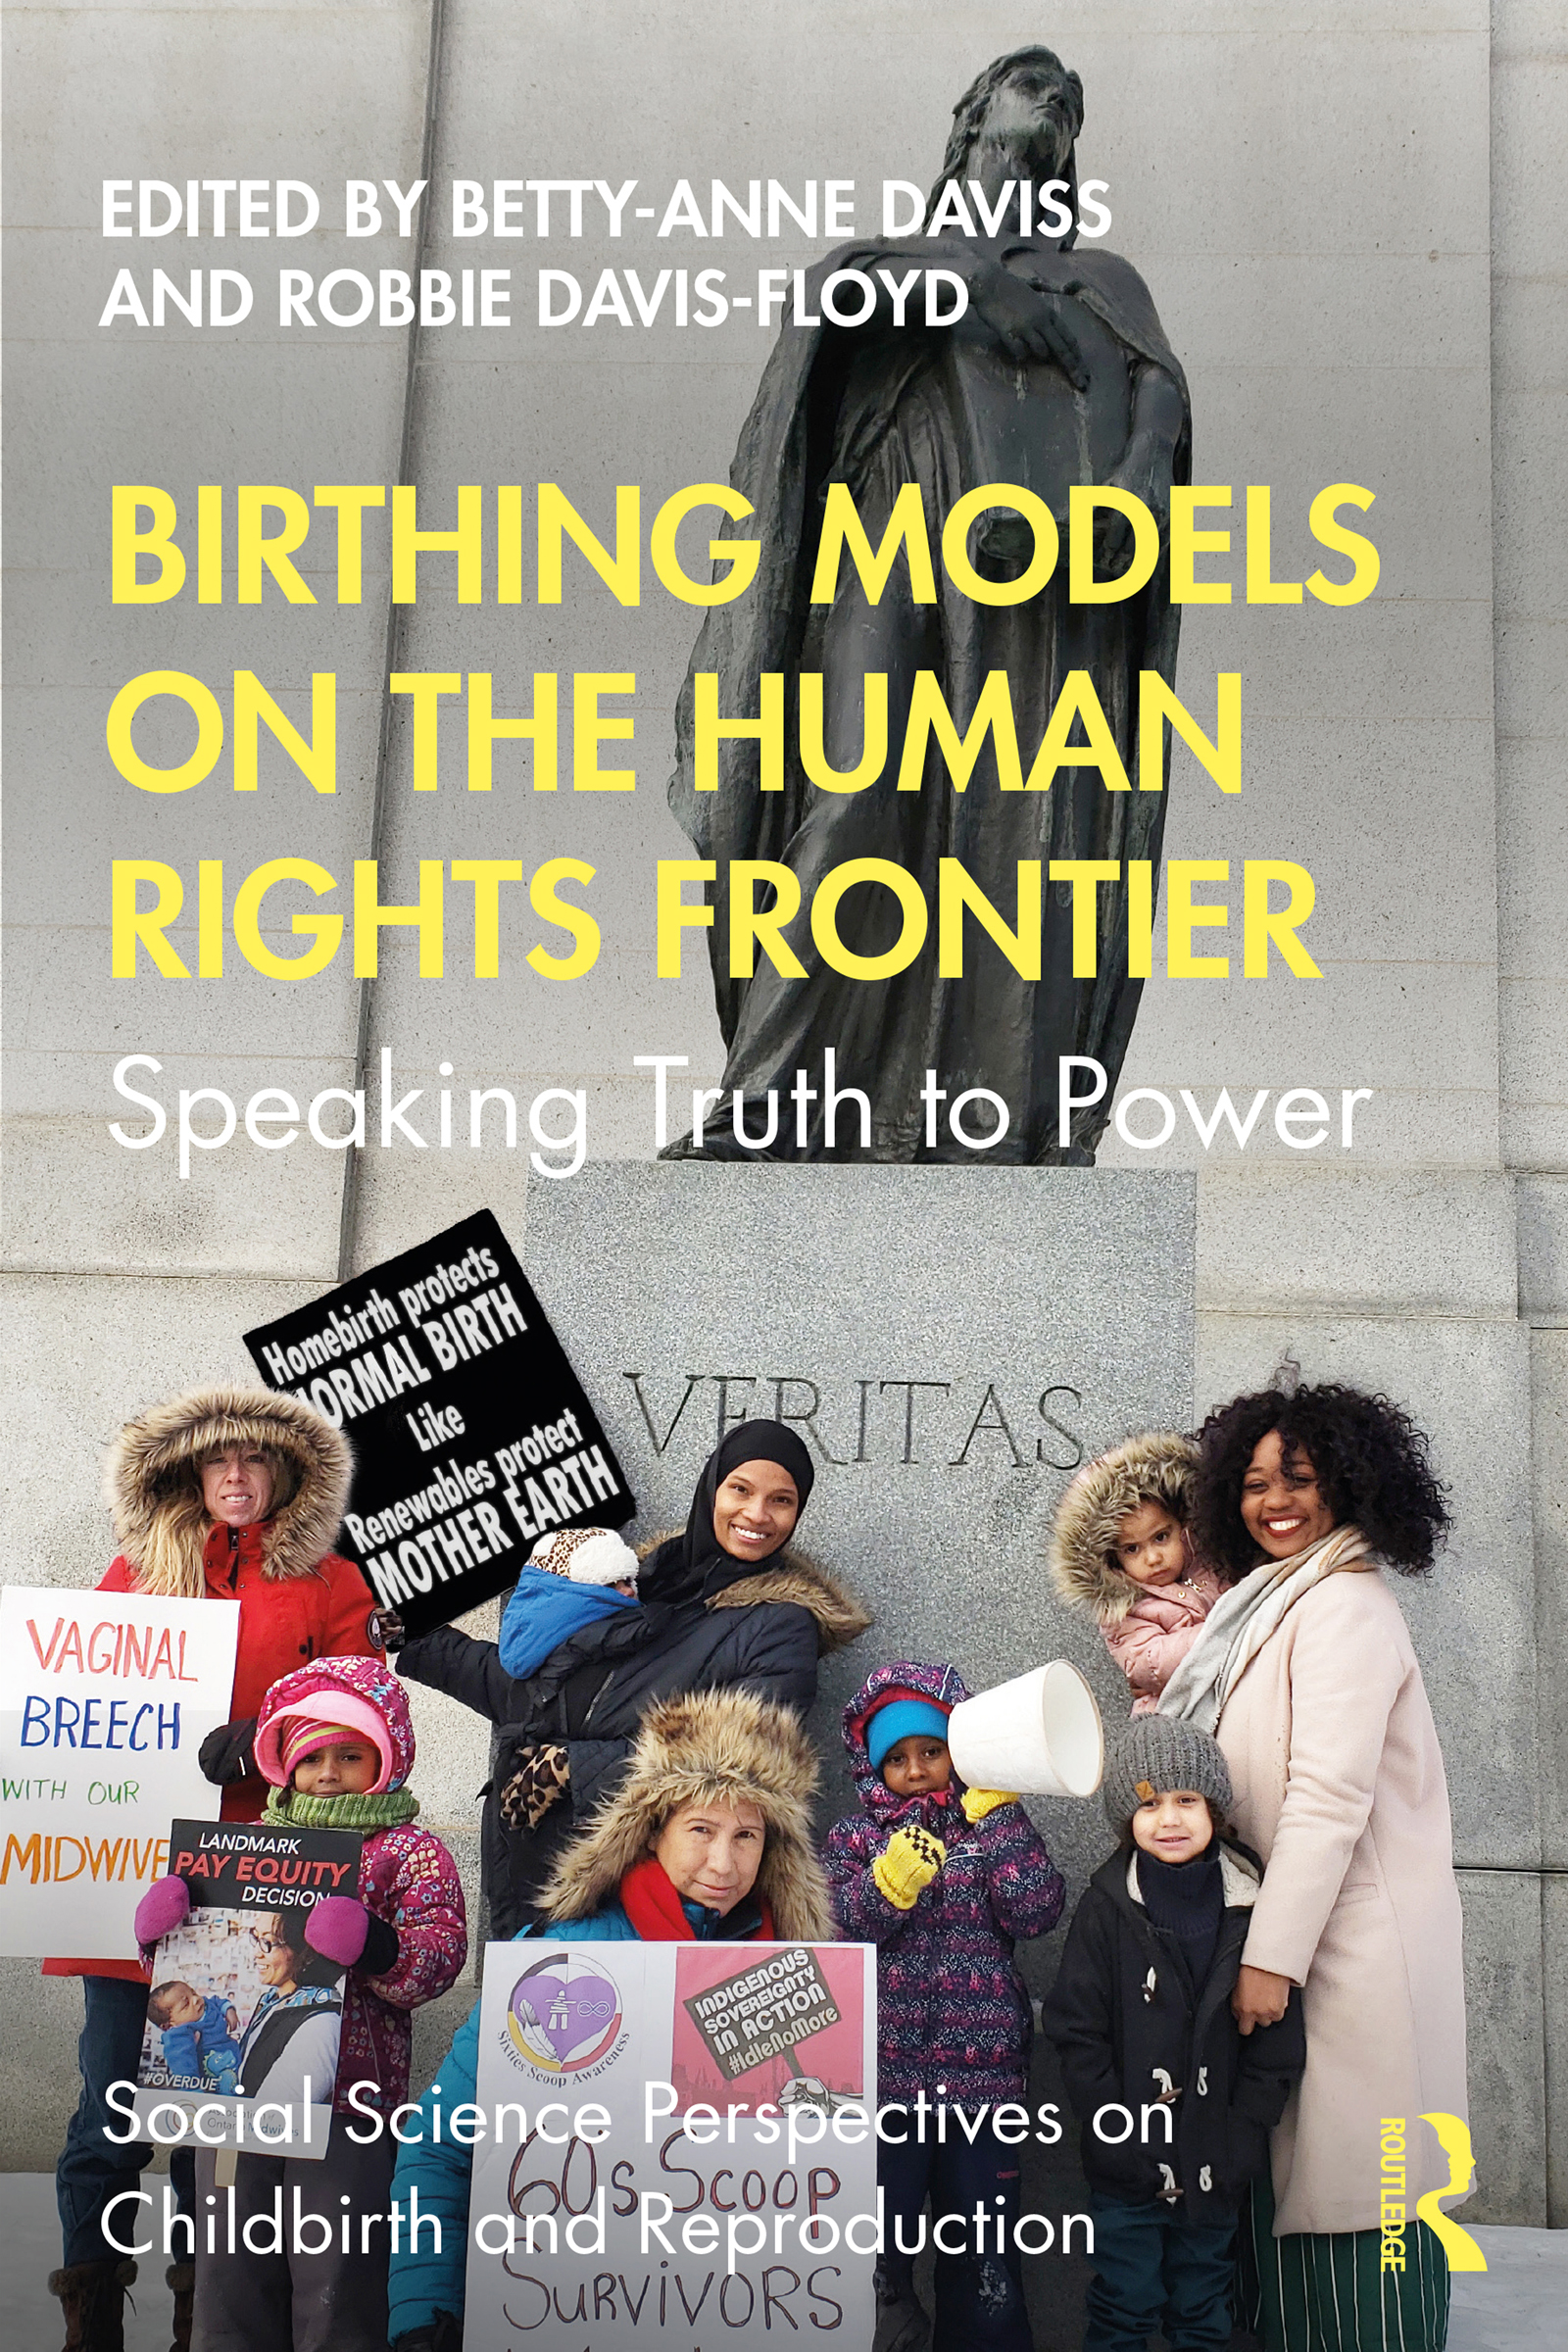 Birthing Models on the Human Rights Frontier